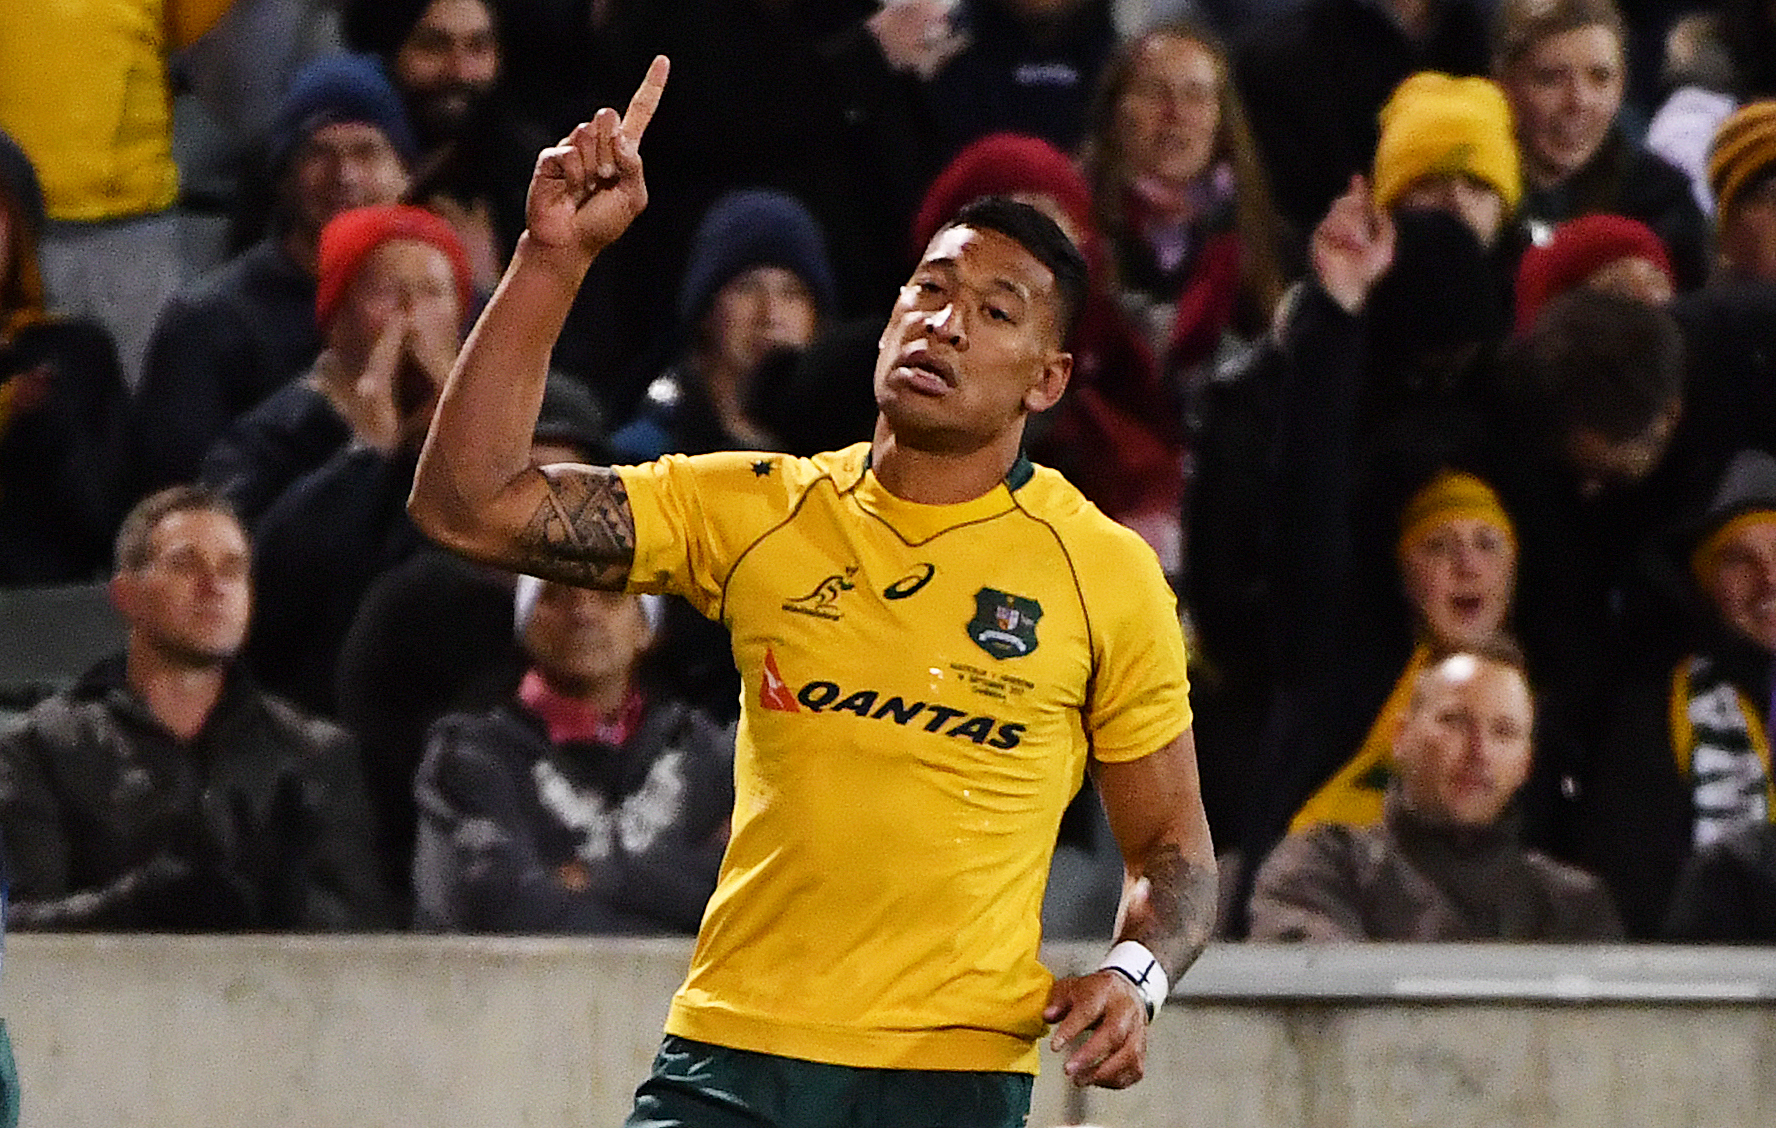 """Article image for """"I don't agree with Folau's views but he's entitled to them"""": Tom Elliott on rugby star's controversial comments"""